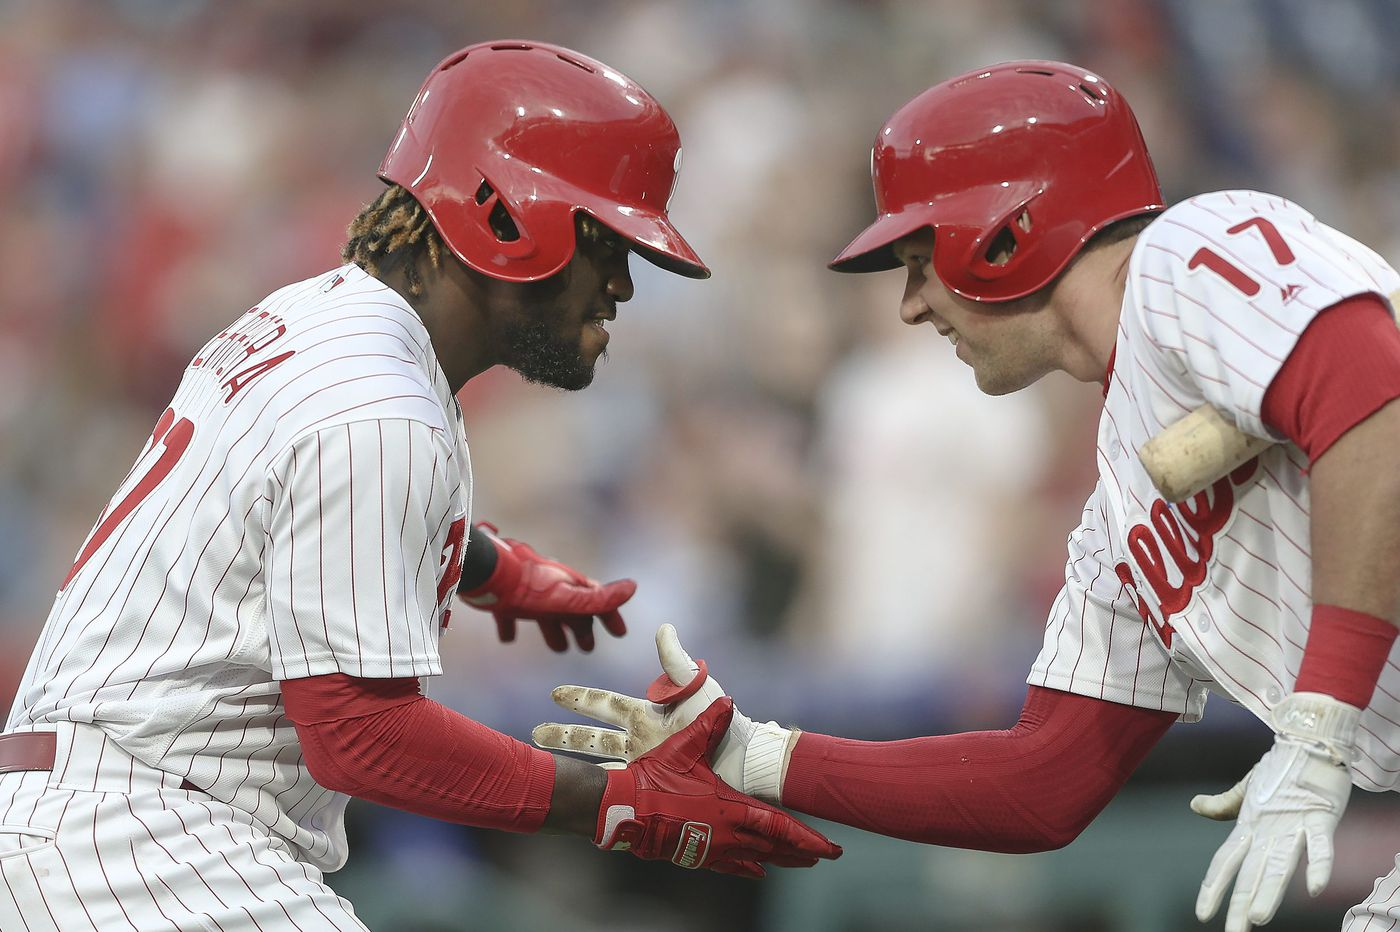 Phillies' whole is greater than sum of their parts, as All-Star voting proves | Extra Innings